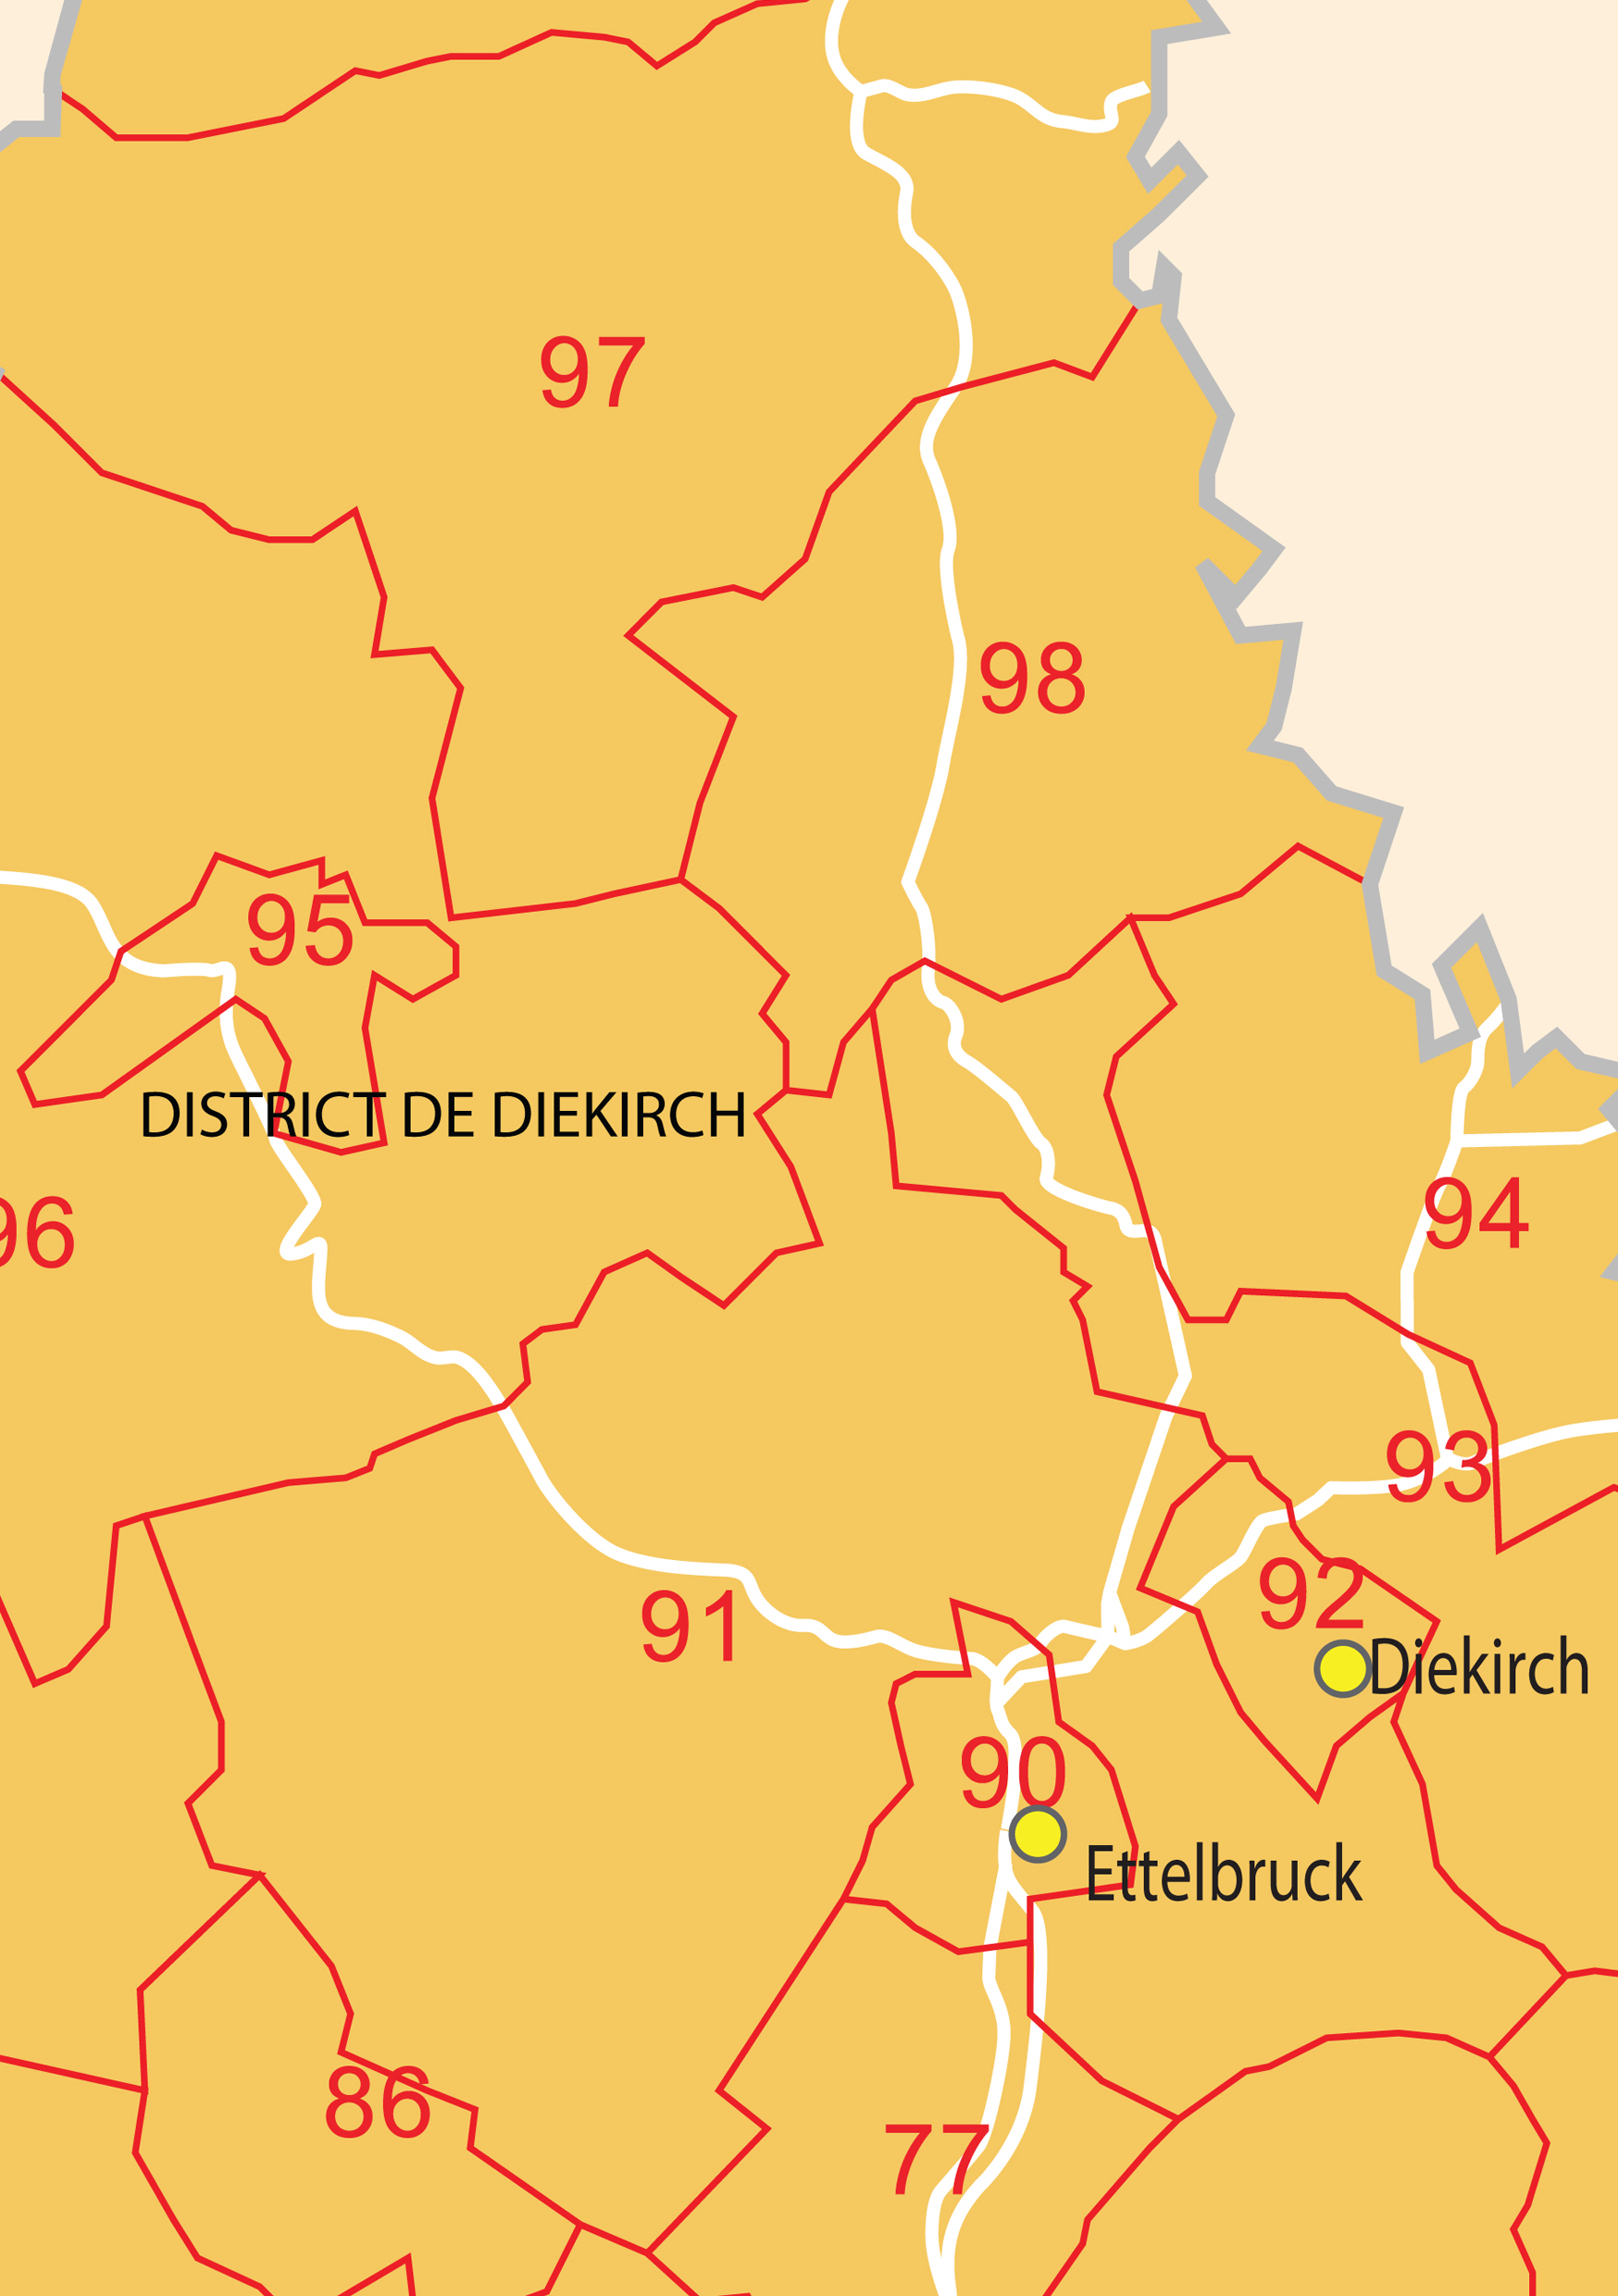 Digital Postcode Map Luxembourg Digit The World Of Mapscom - Luxembourg clickable map